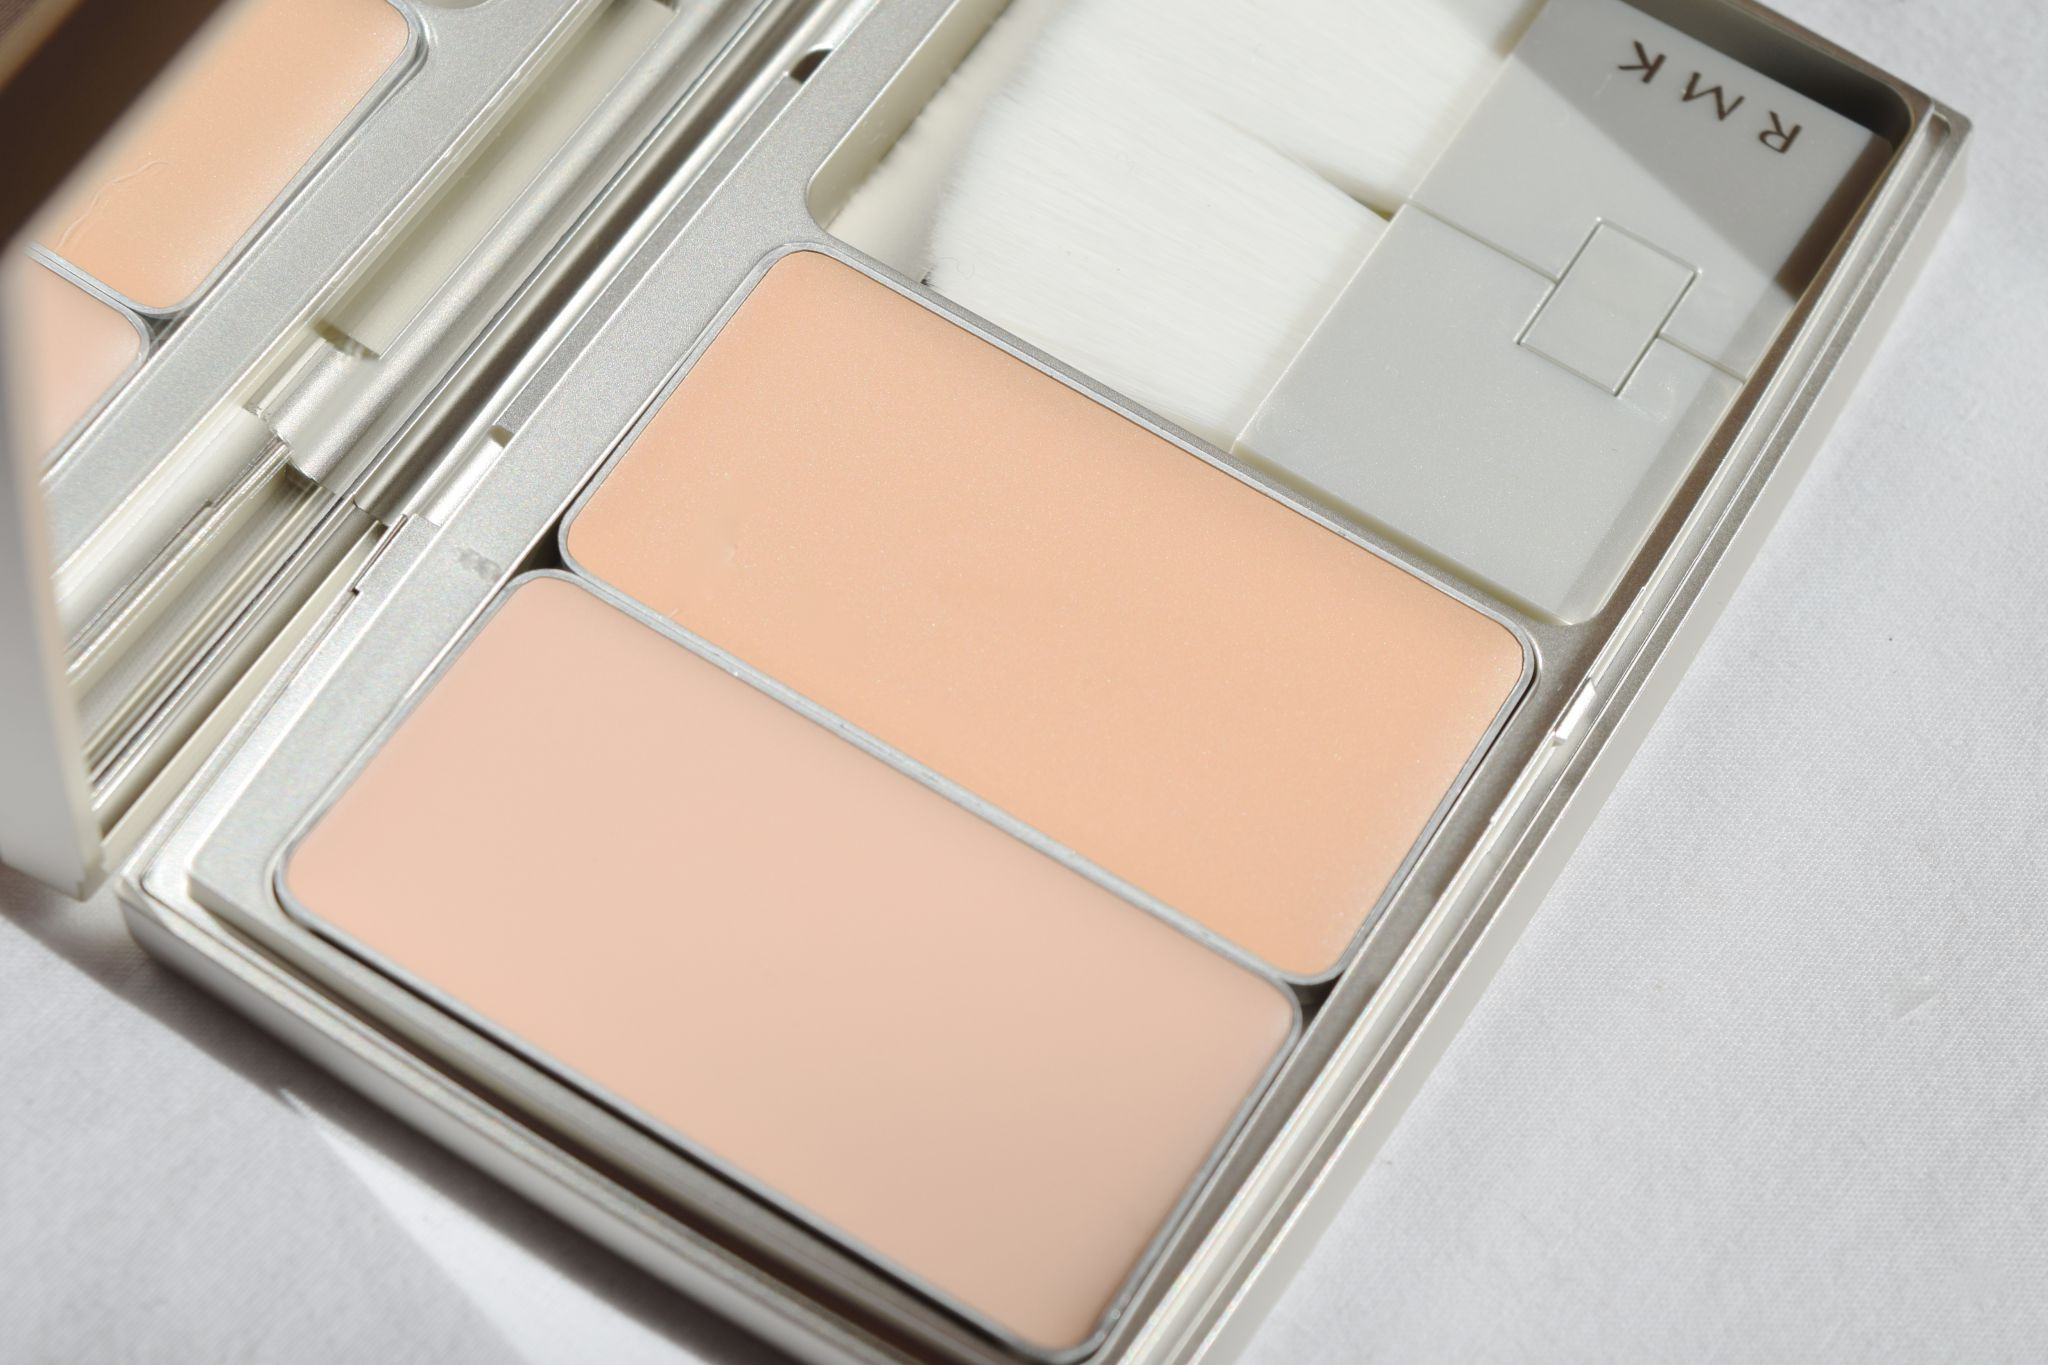 RMK Casual Solid Foundation 1